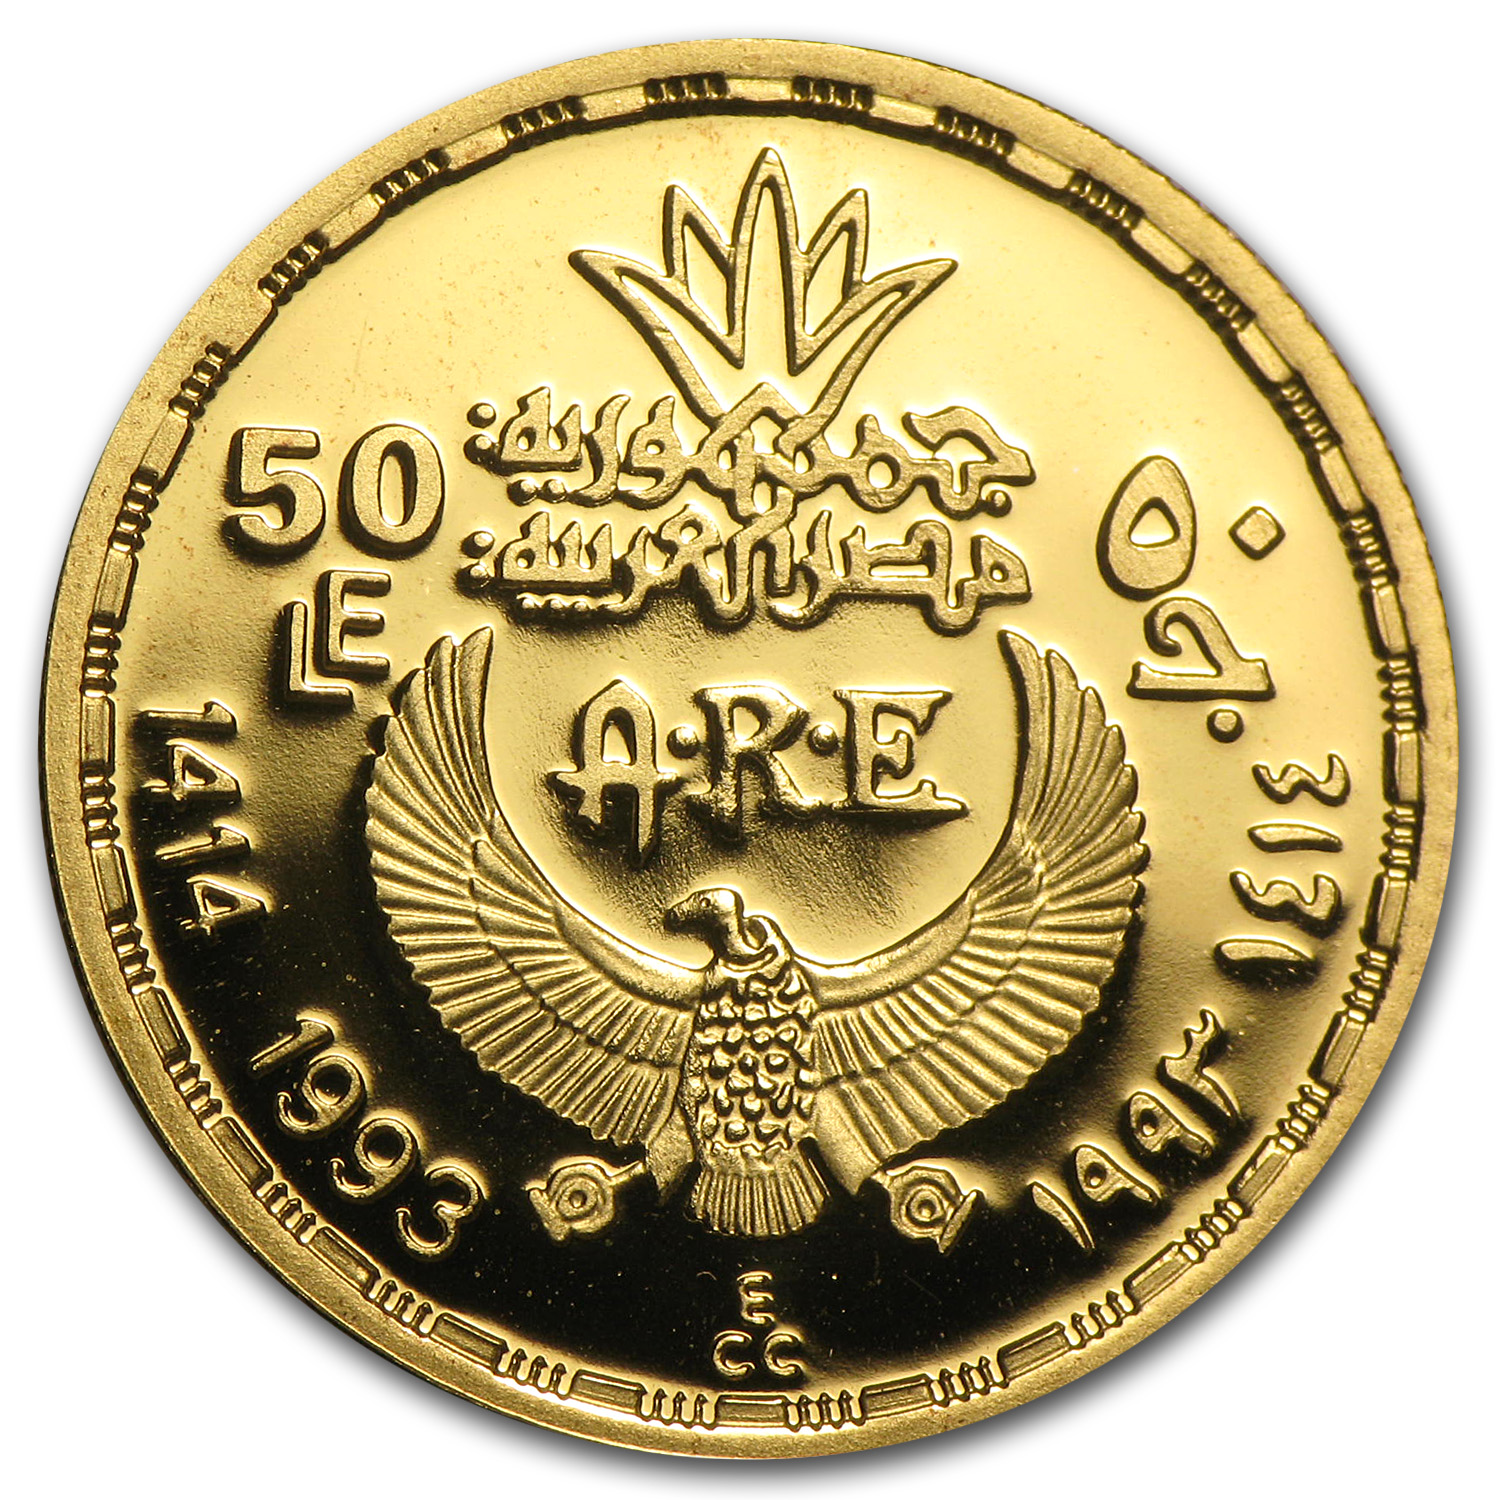 Egypt AH1414/1993 Proof Gold 50 Pound Ramses II